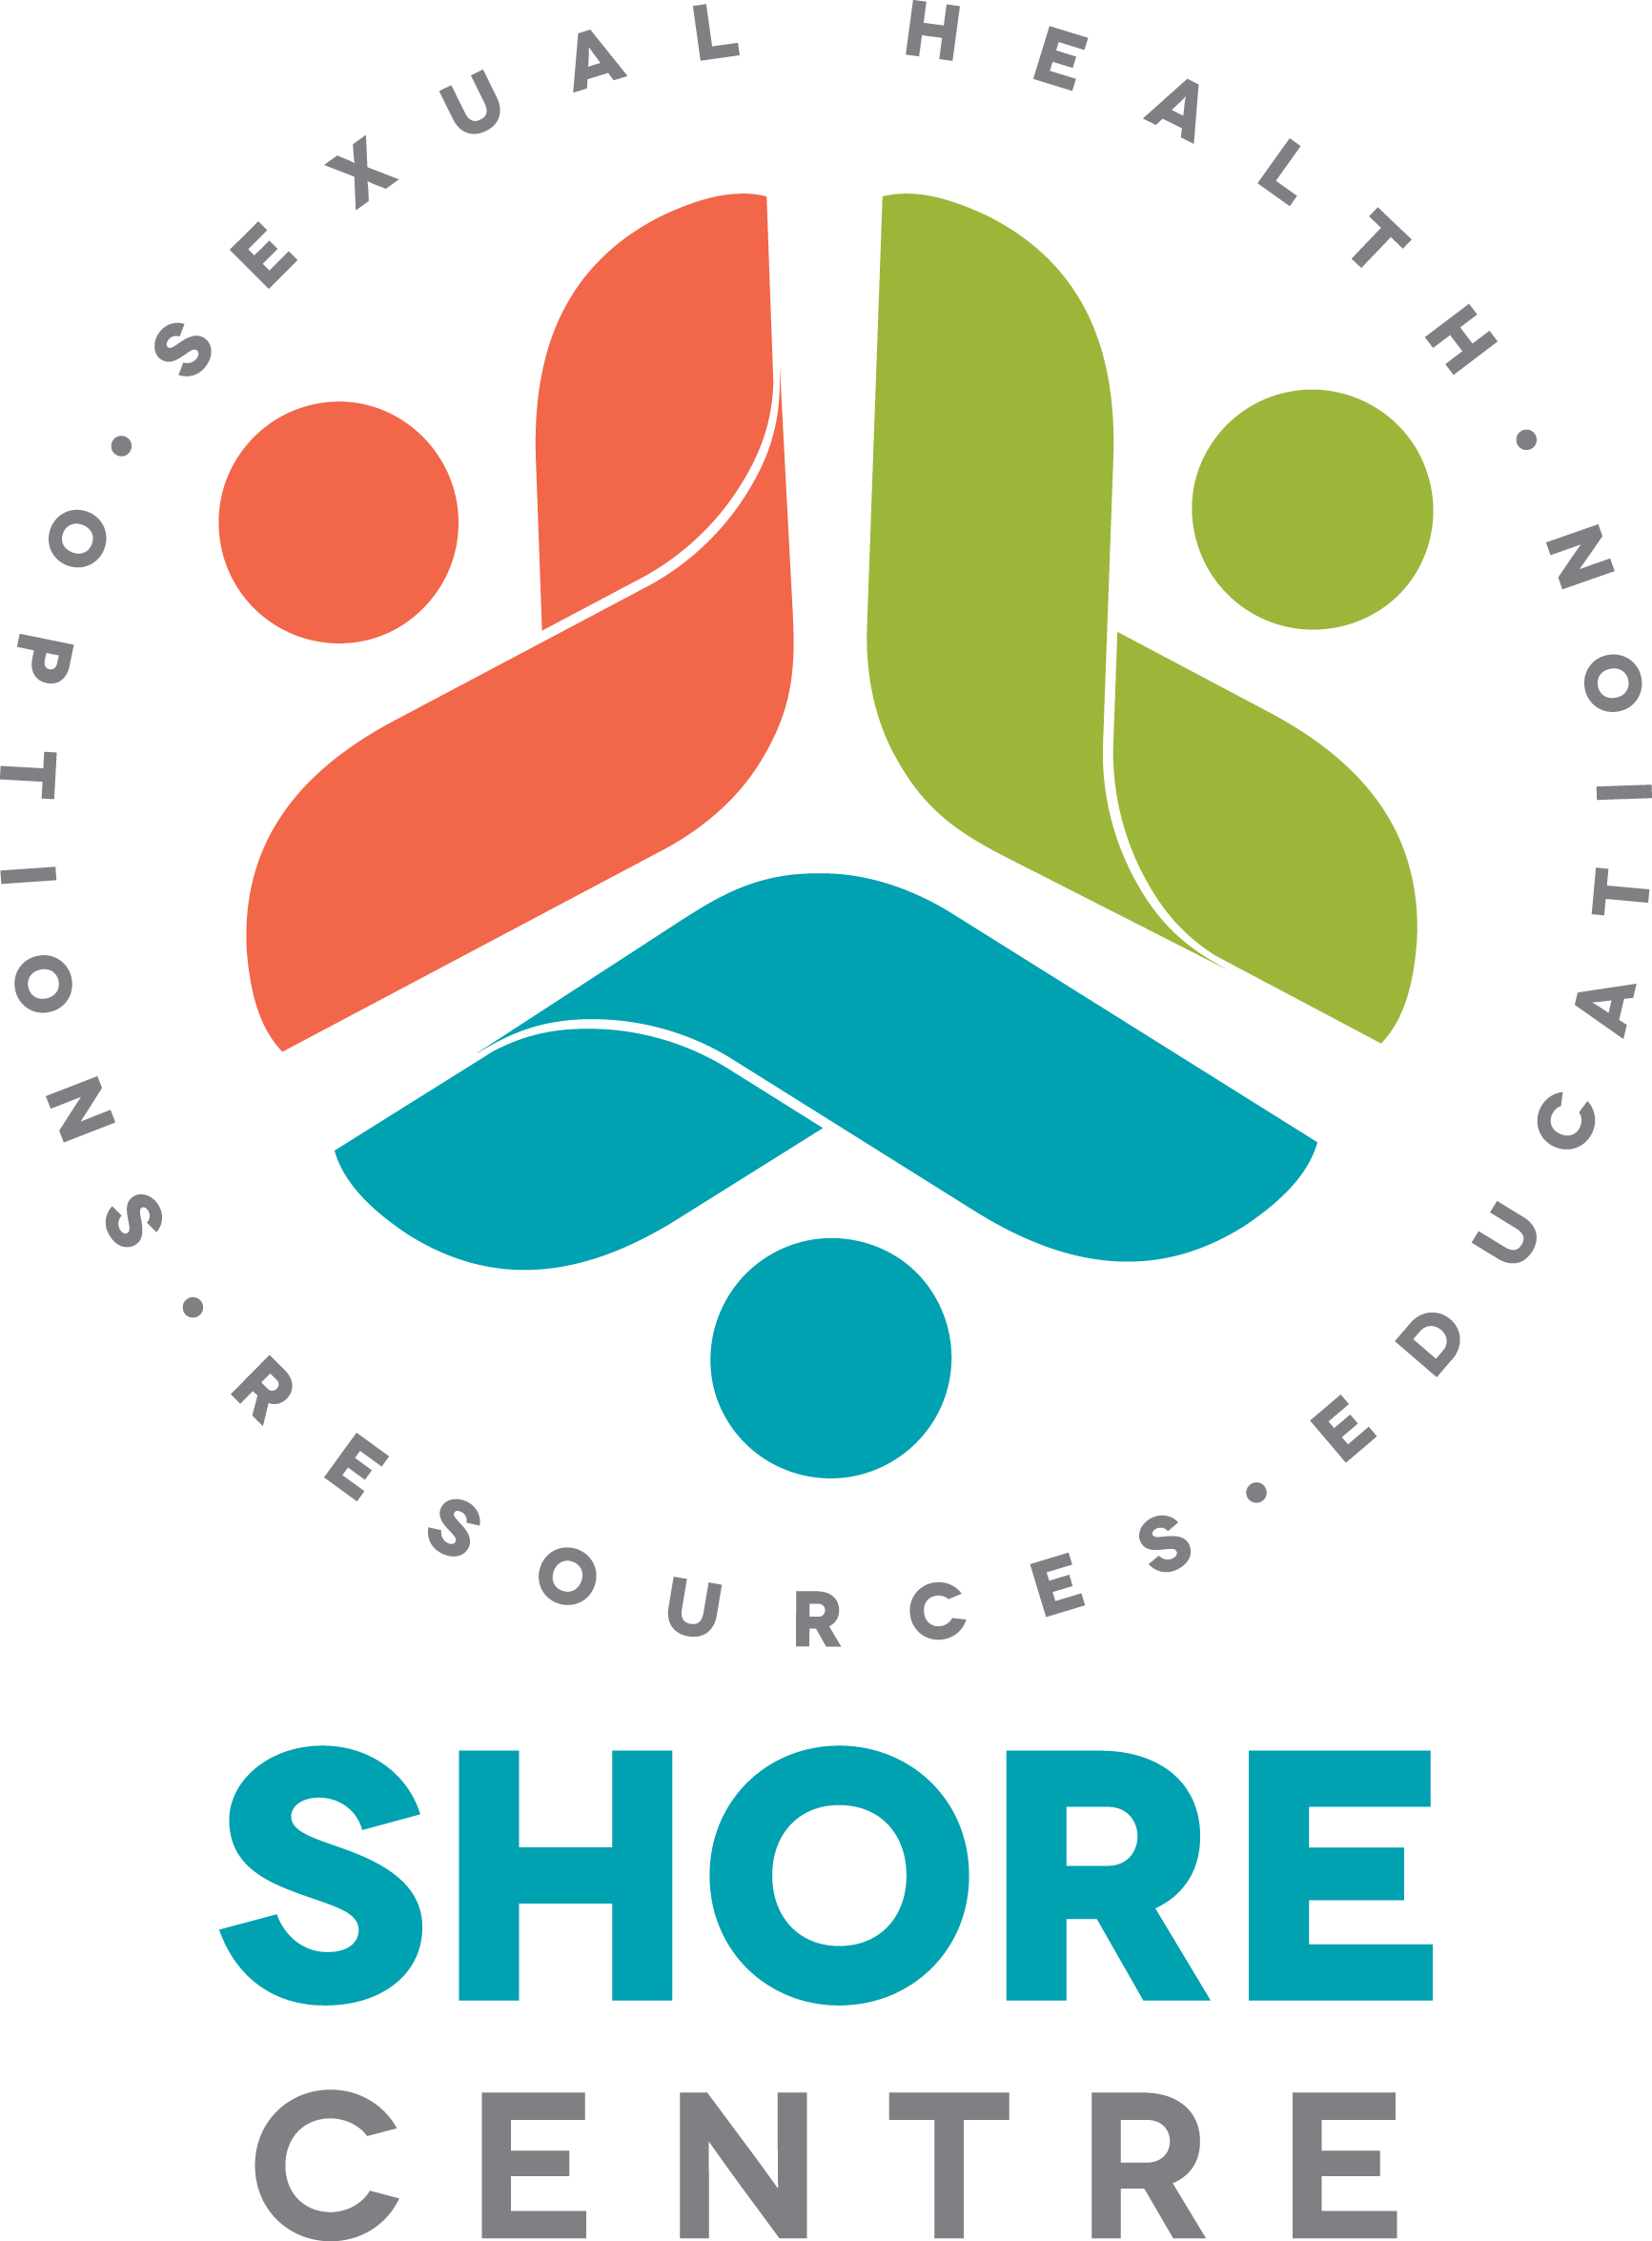 SHORE Centre logo in green, red, blue circled by words Sexual Health, Options, Resources, Education.